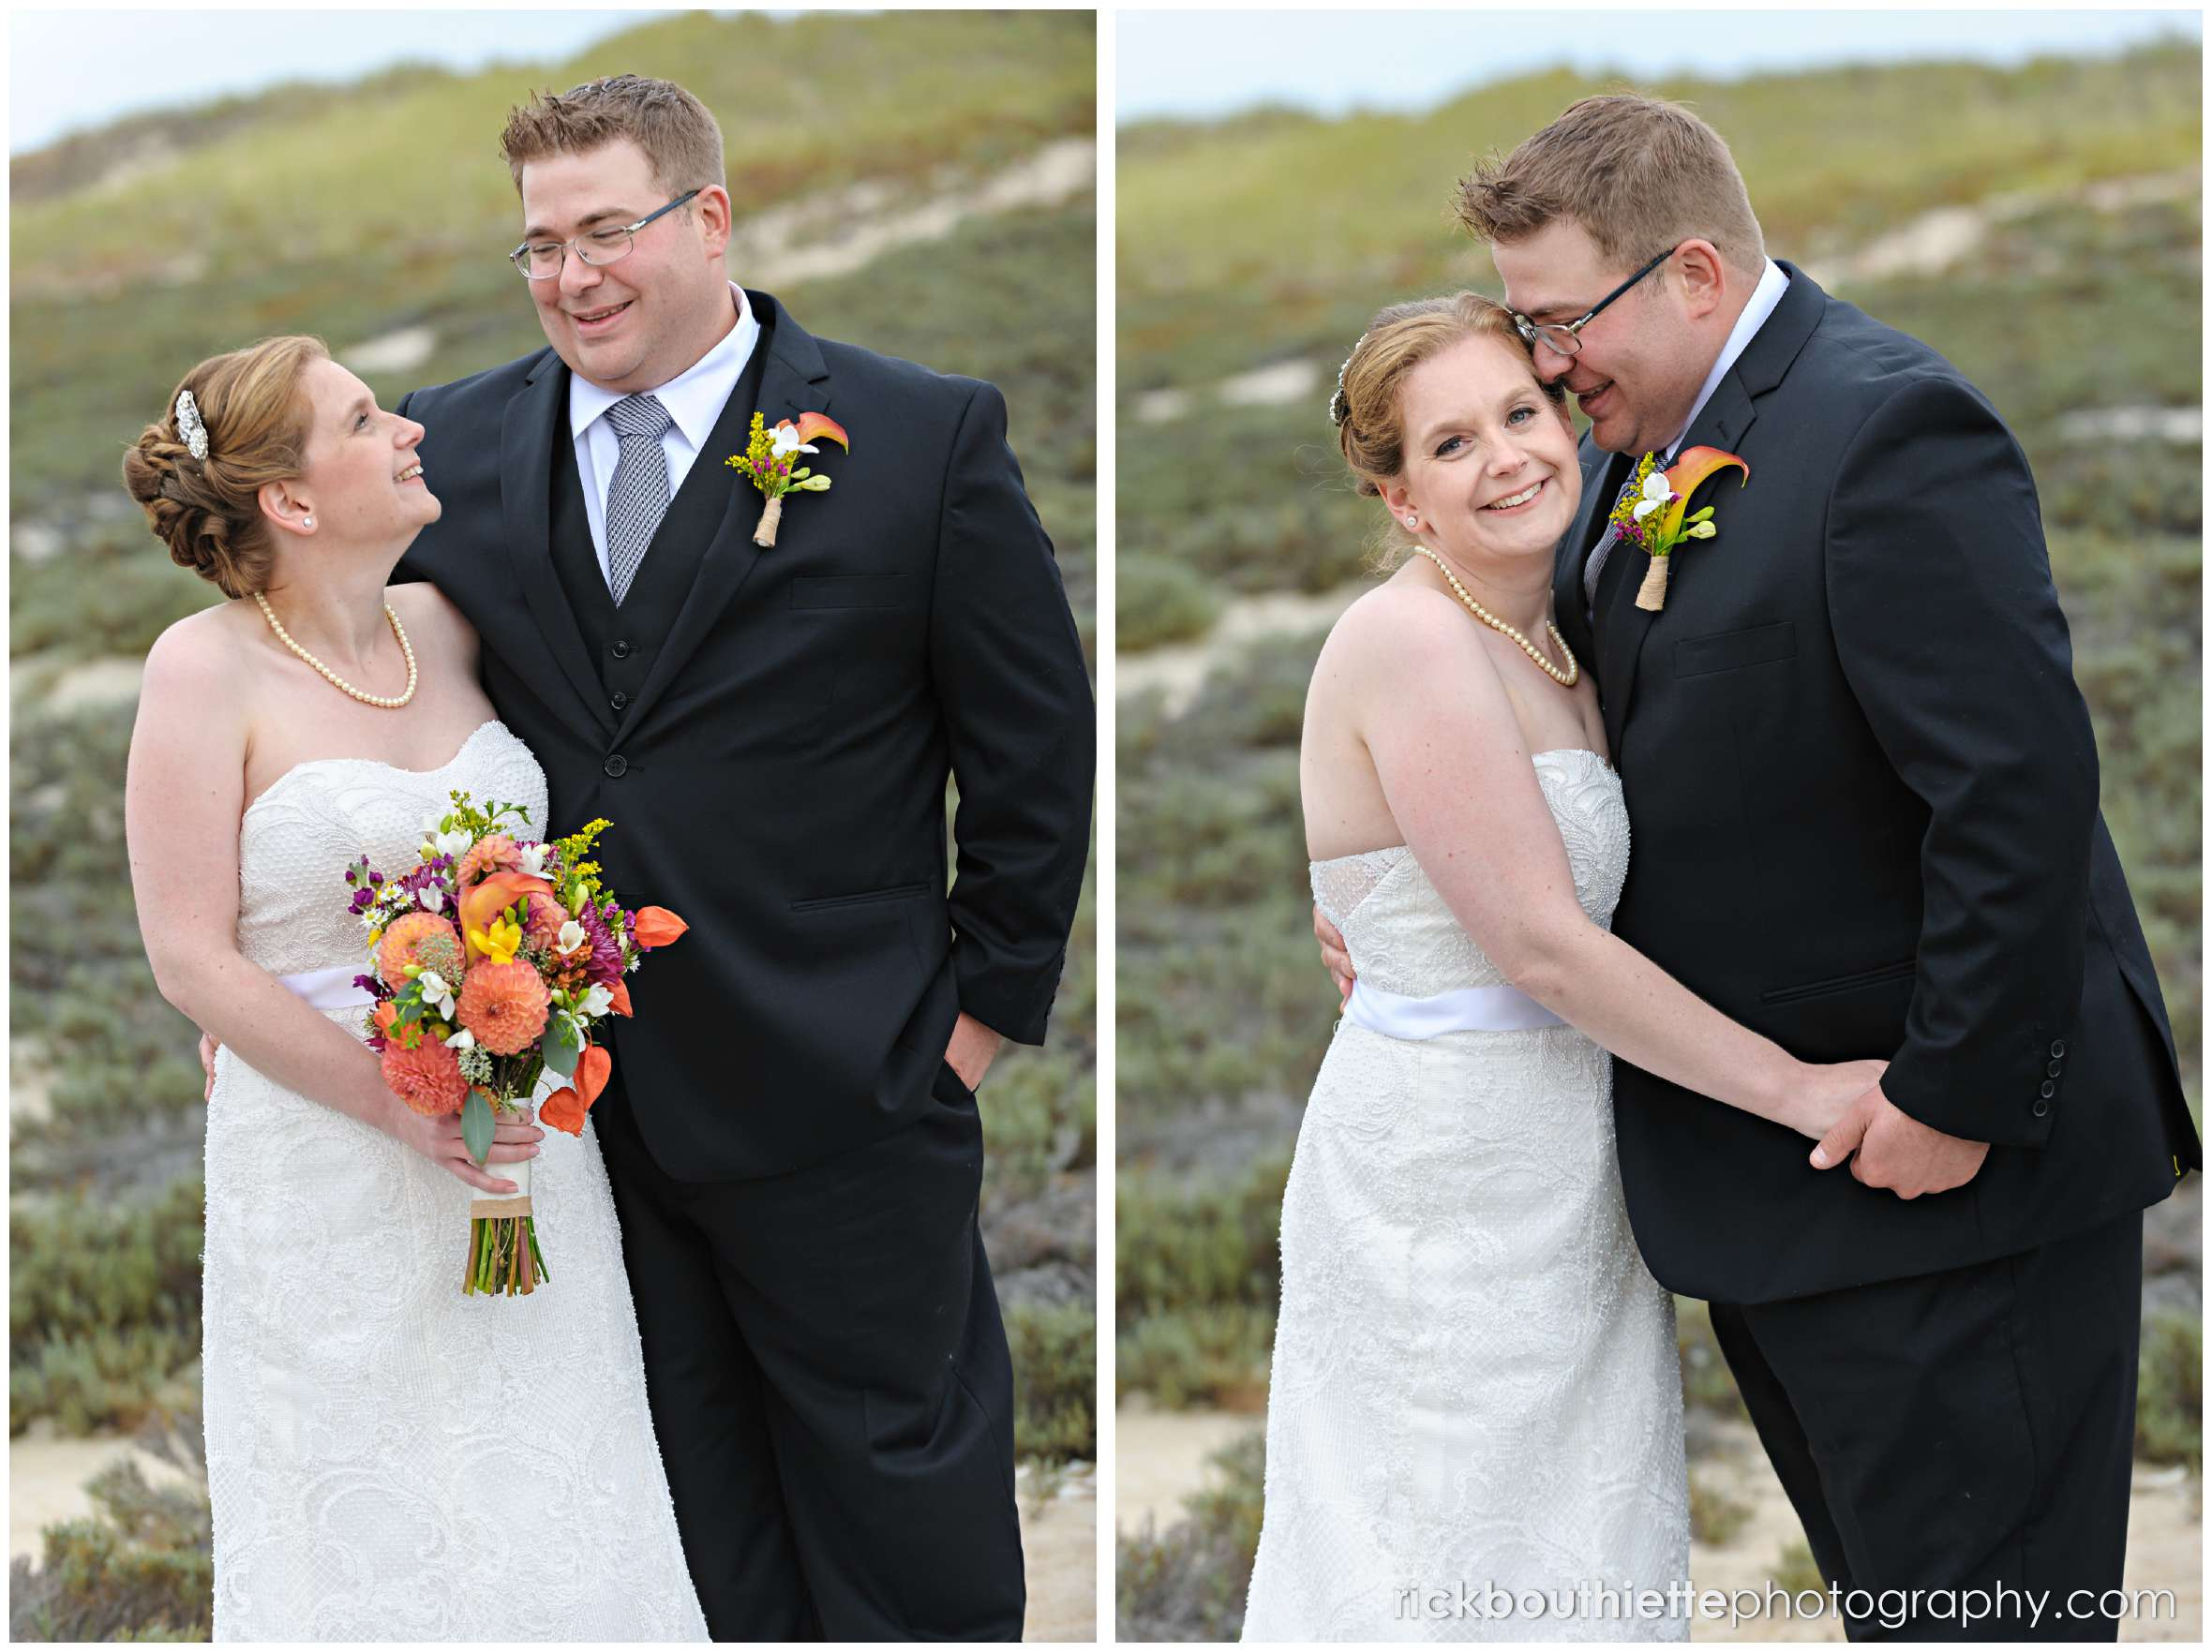 bride and groom portaits on Seabrook beach after their seacoast wedding ceremony